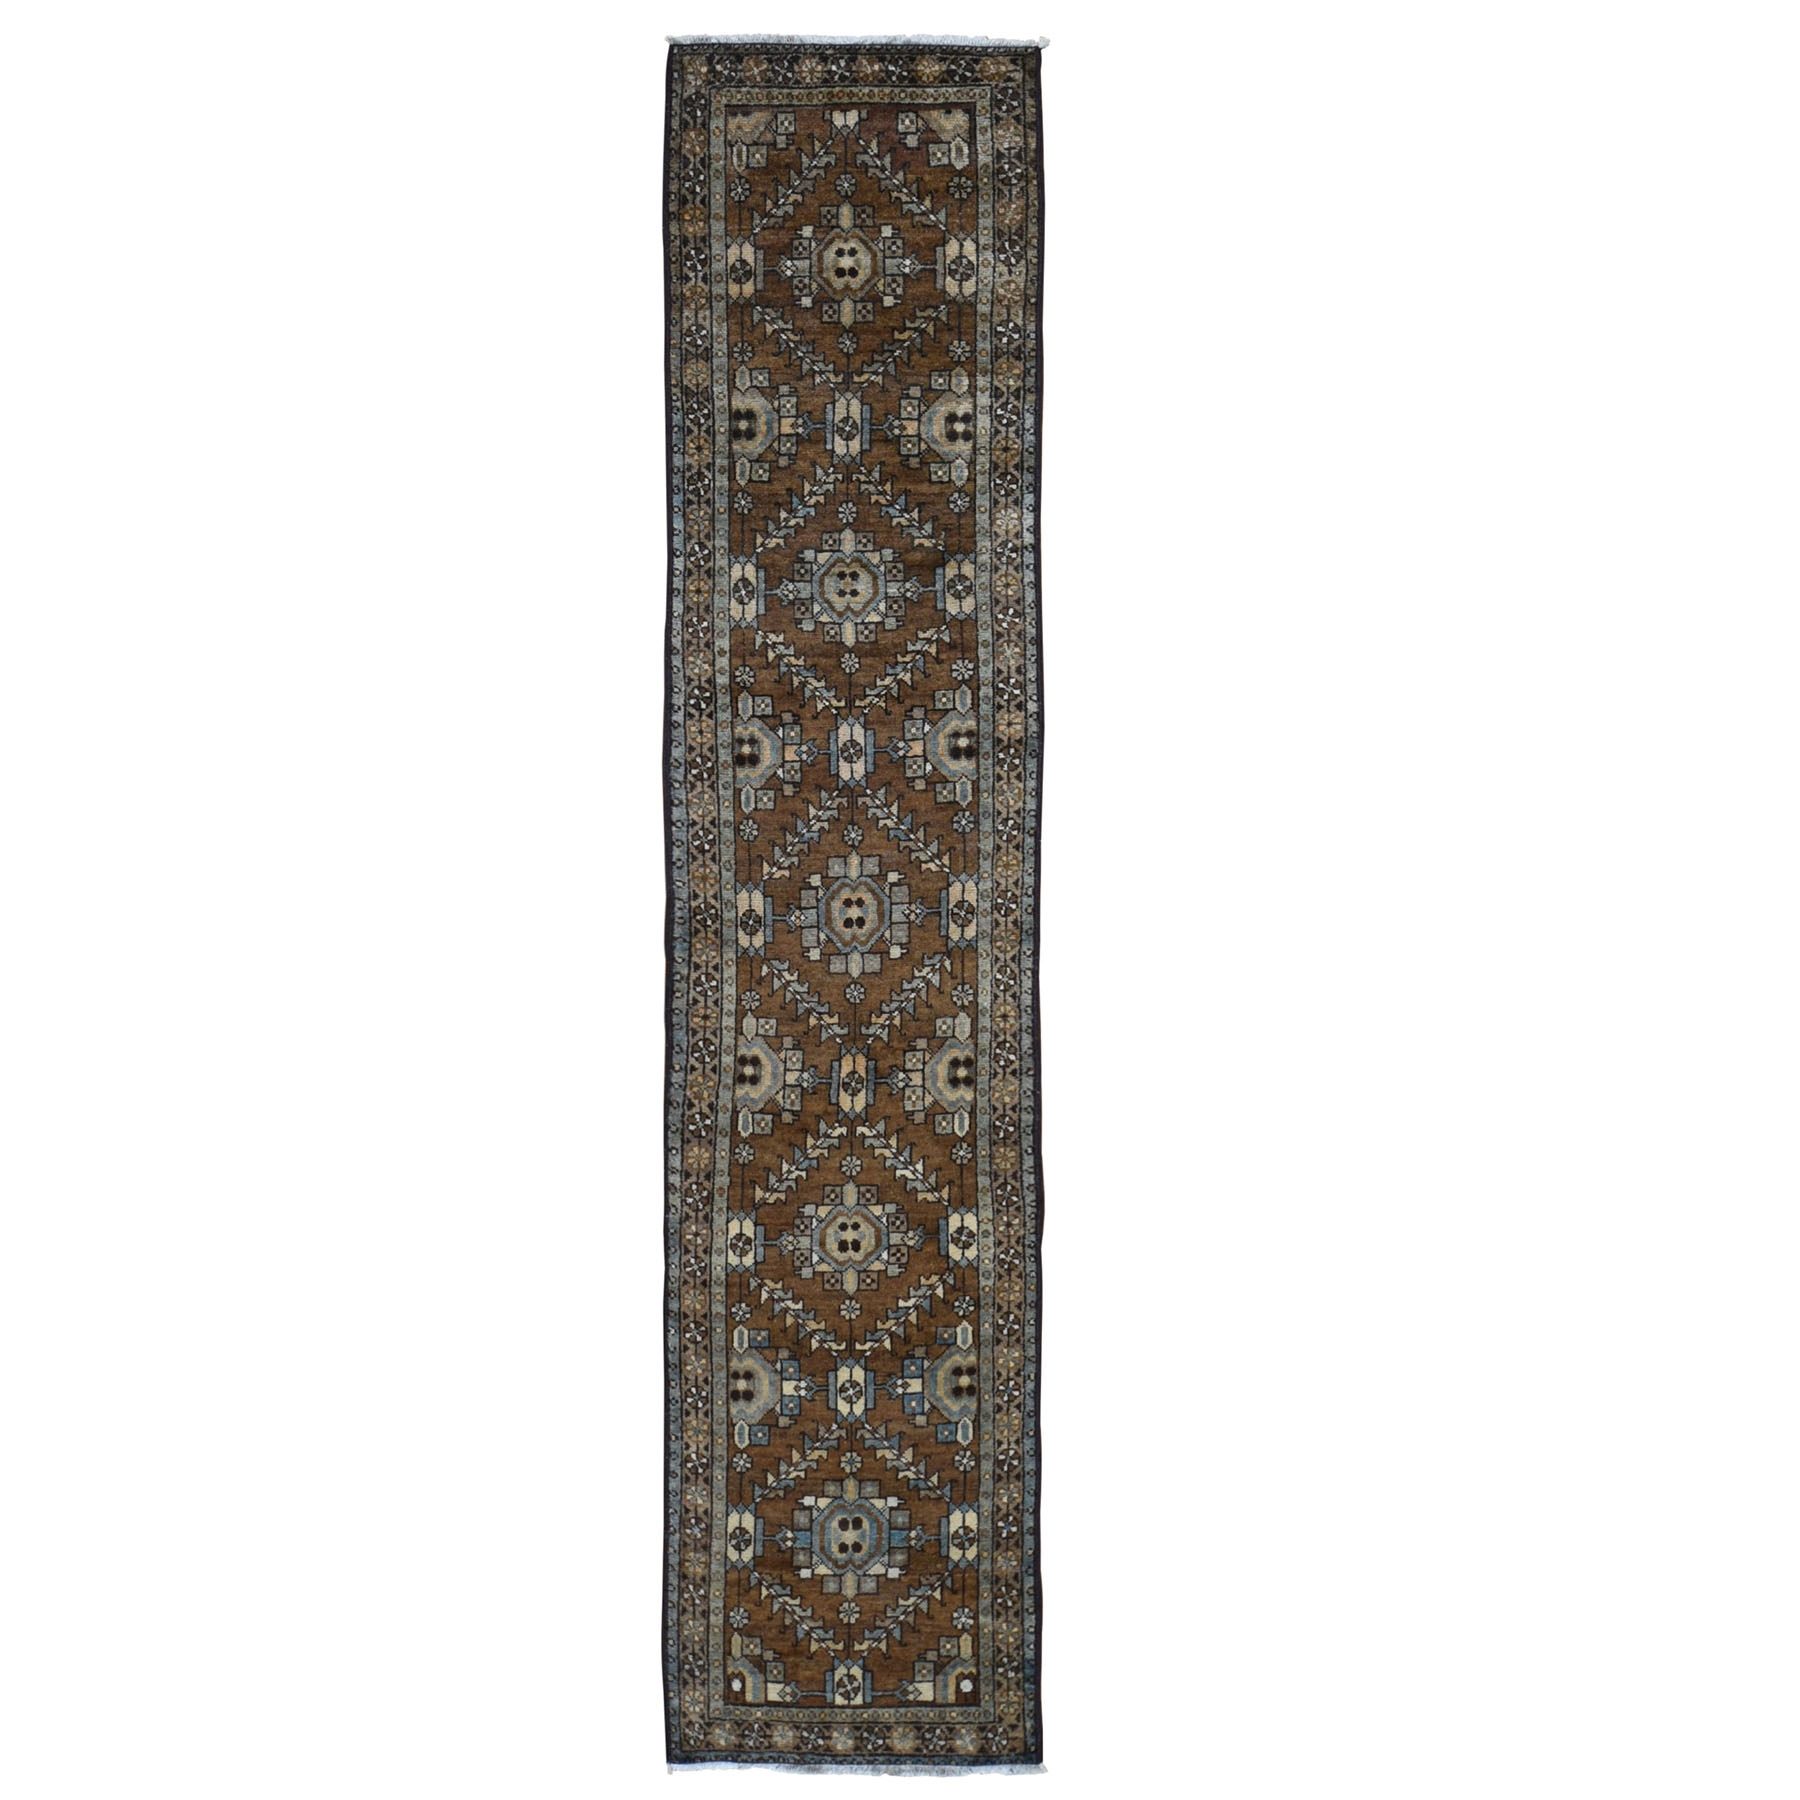 Antique Collection Hand Knotted Brown Rug No: 0198096